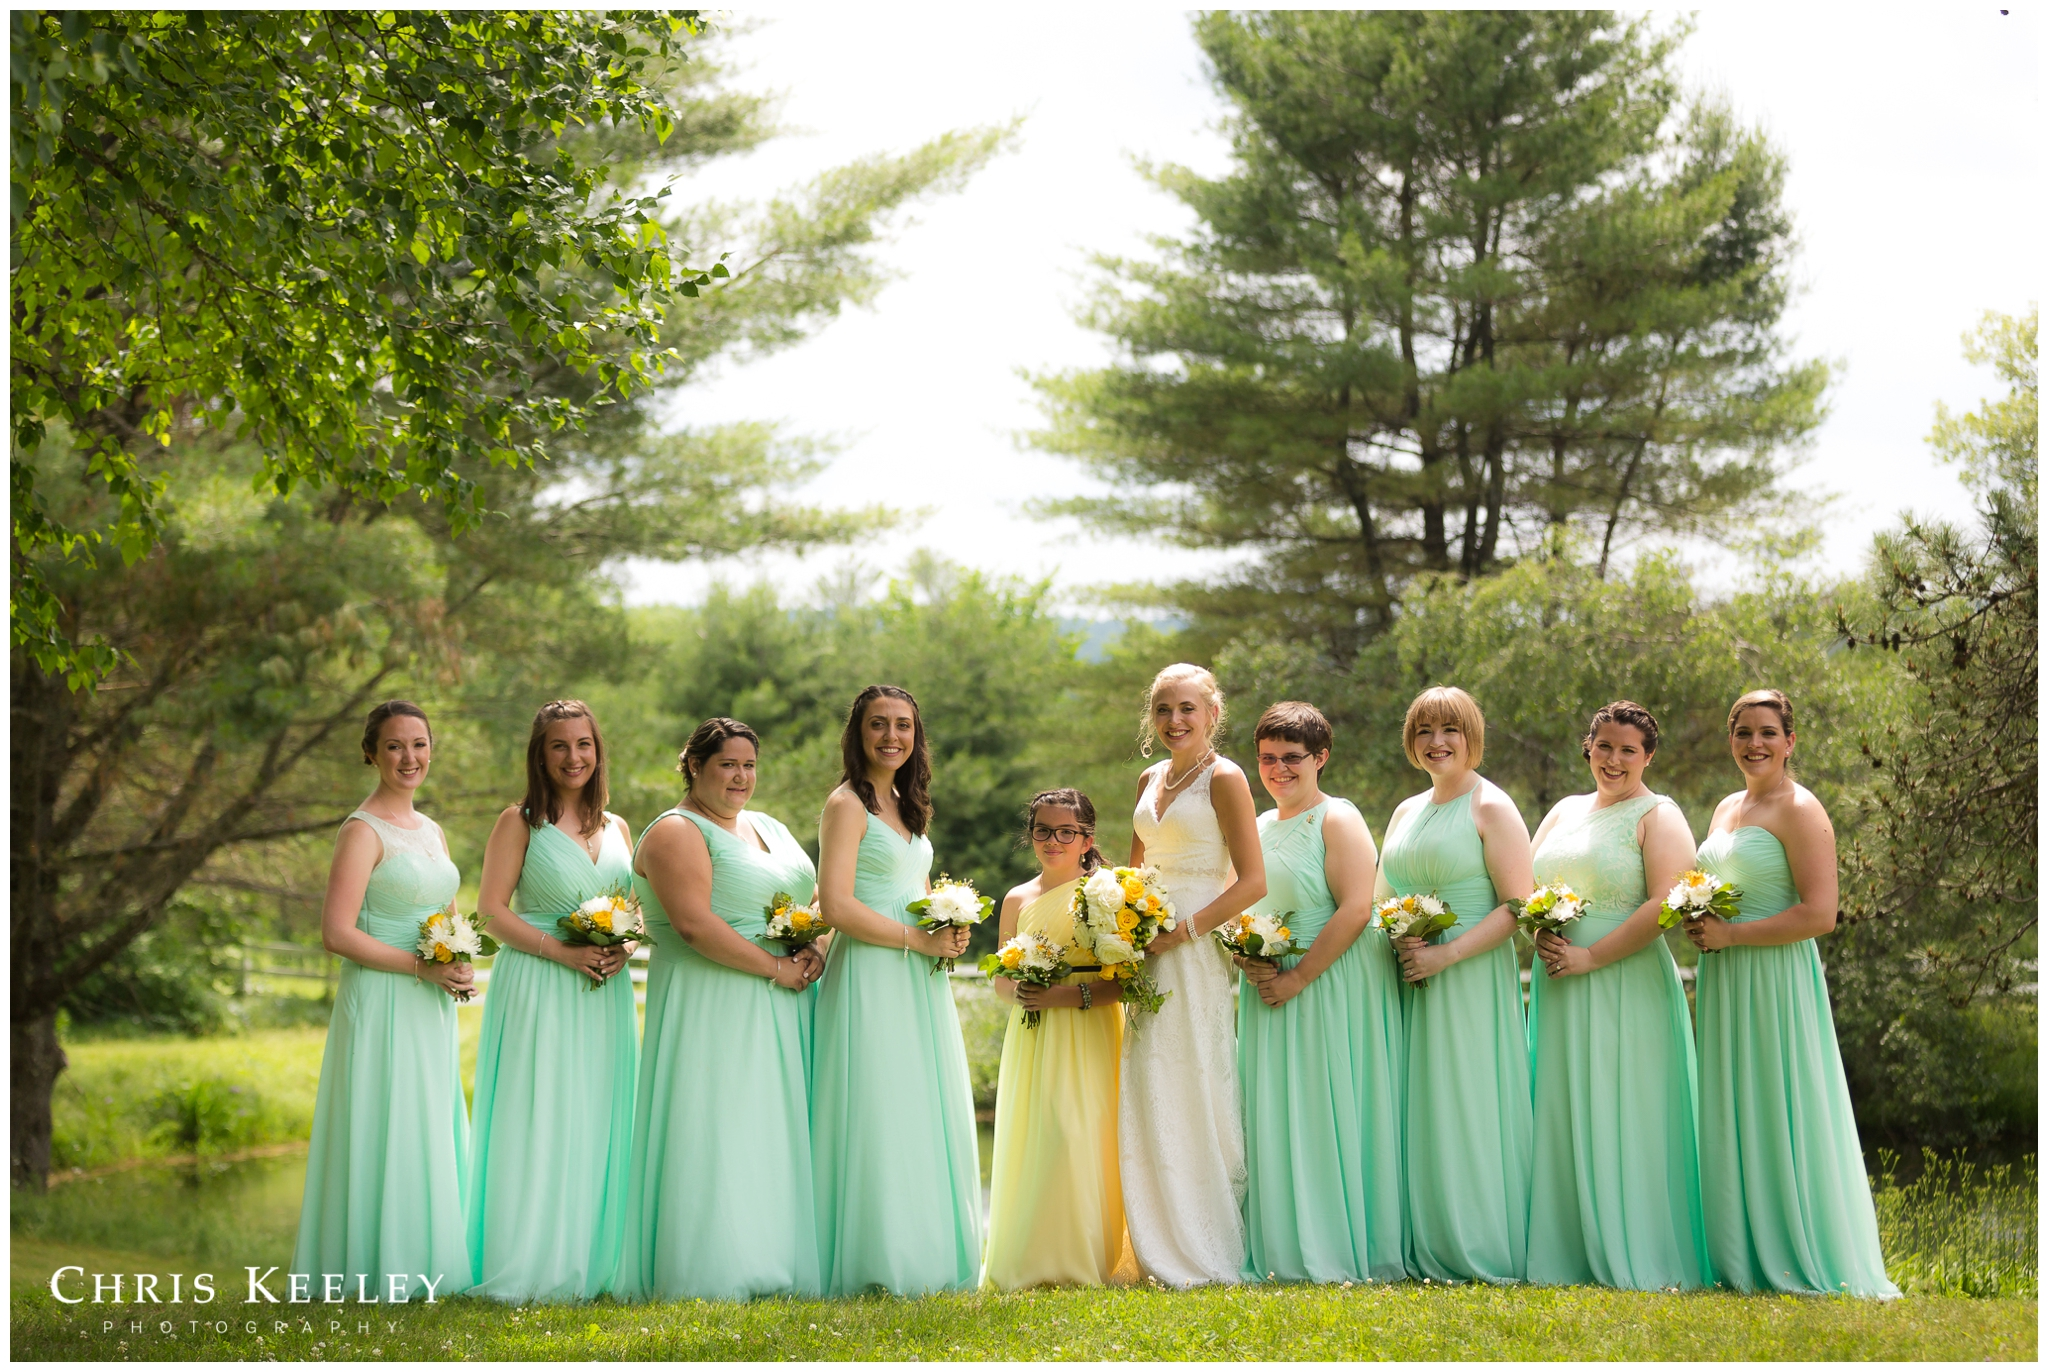 warm-sunny-bridal-party-at-new-hampshire-mountain-inn.jpg